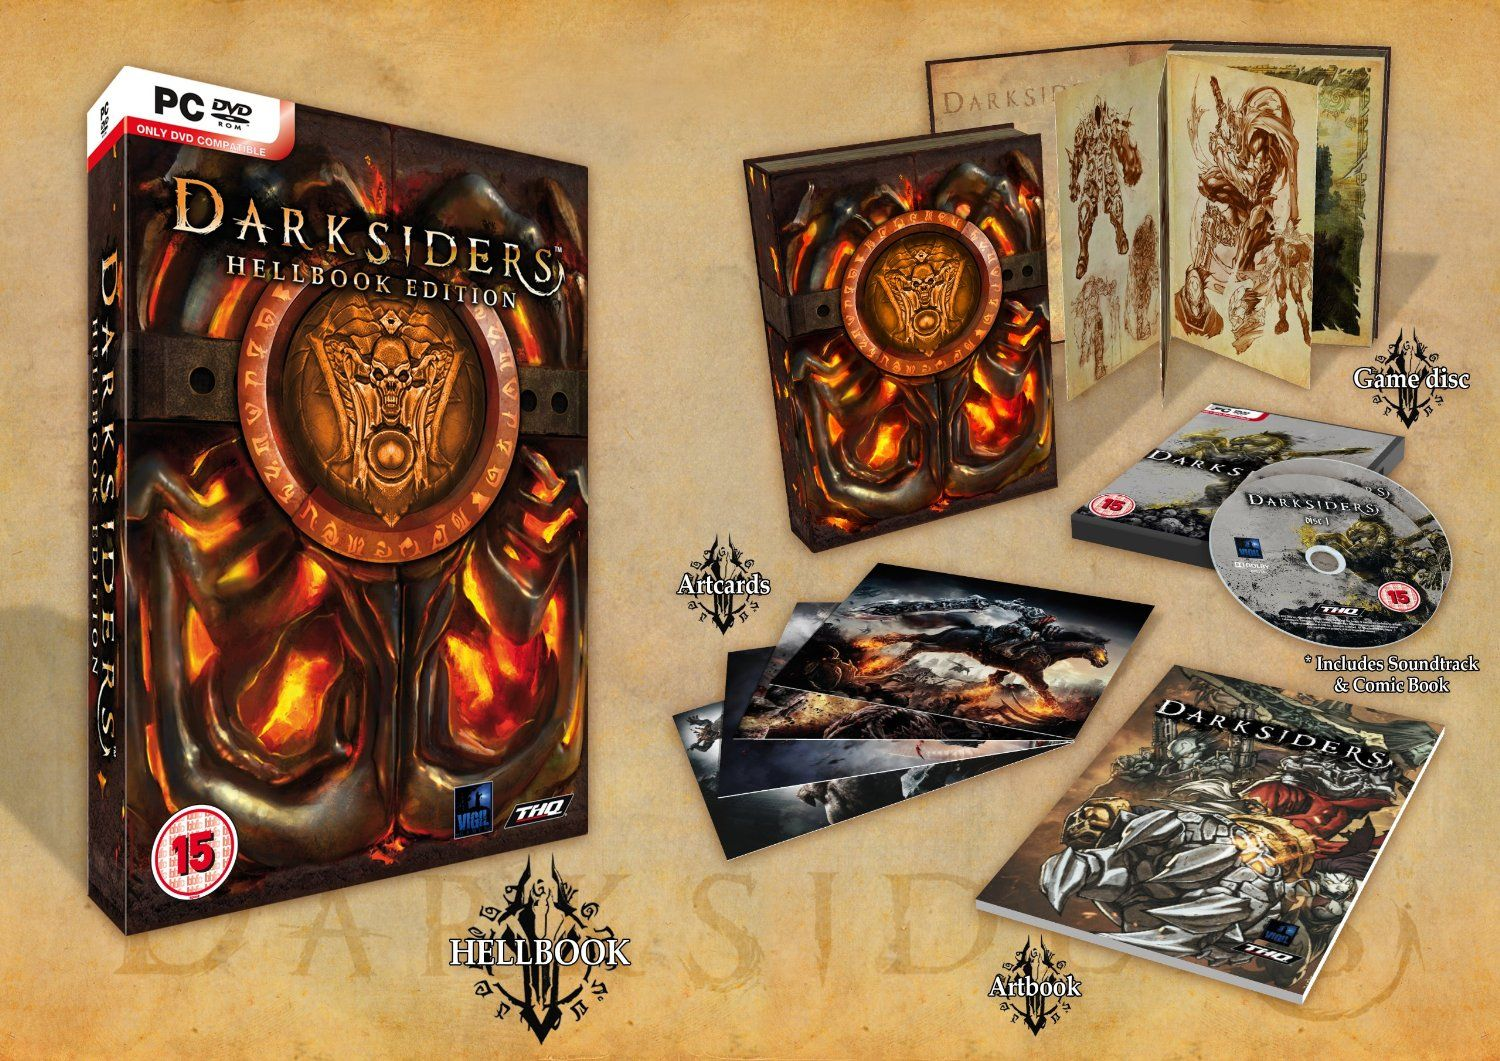 Darksiders: Hell Book Edition (PC) - 3